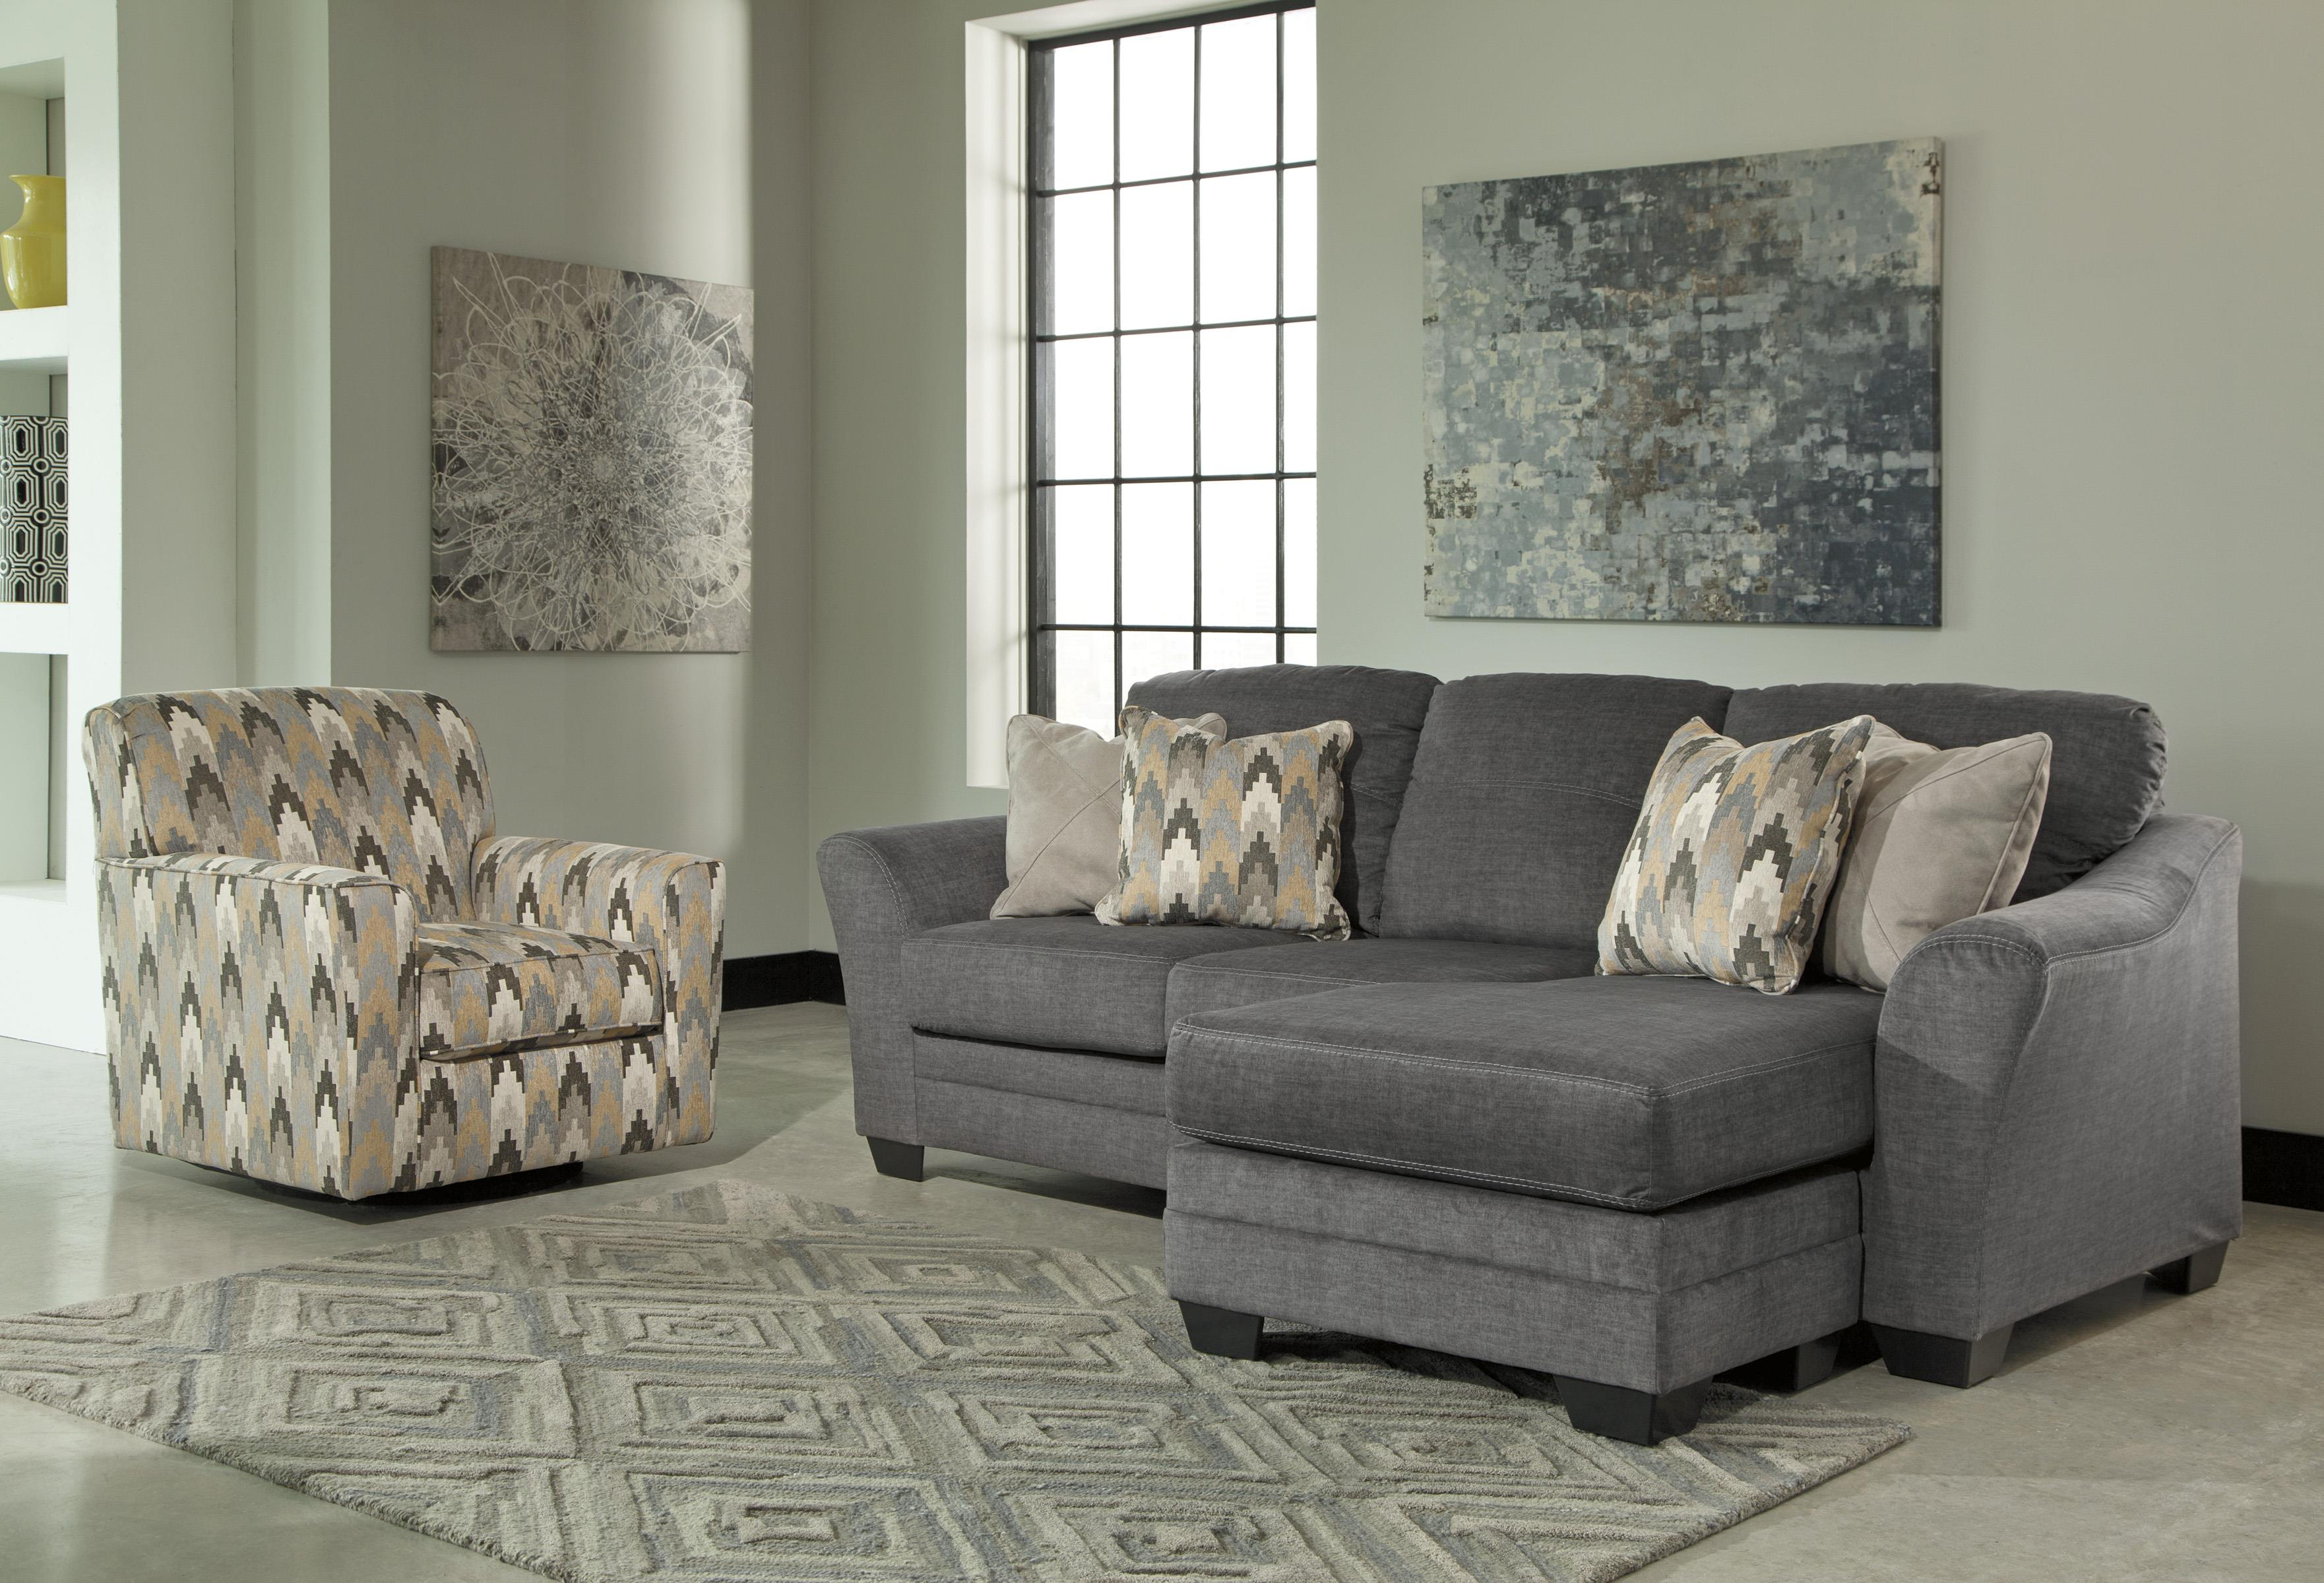 Benchcraft braxlin contemporary sofa chaise in gray fabric for Benchcraft chaise lounge